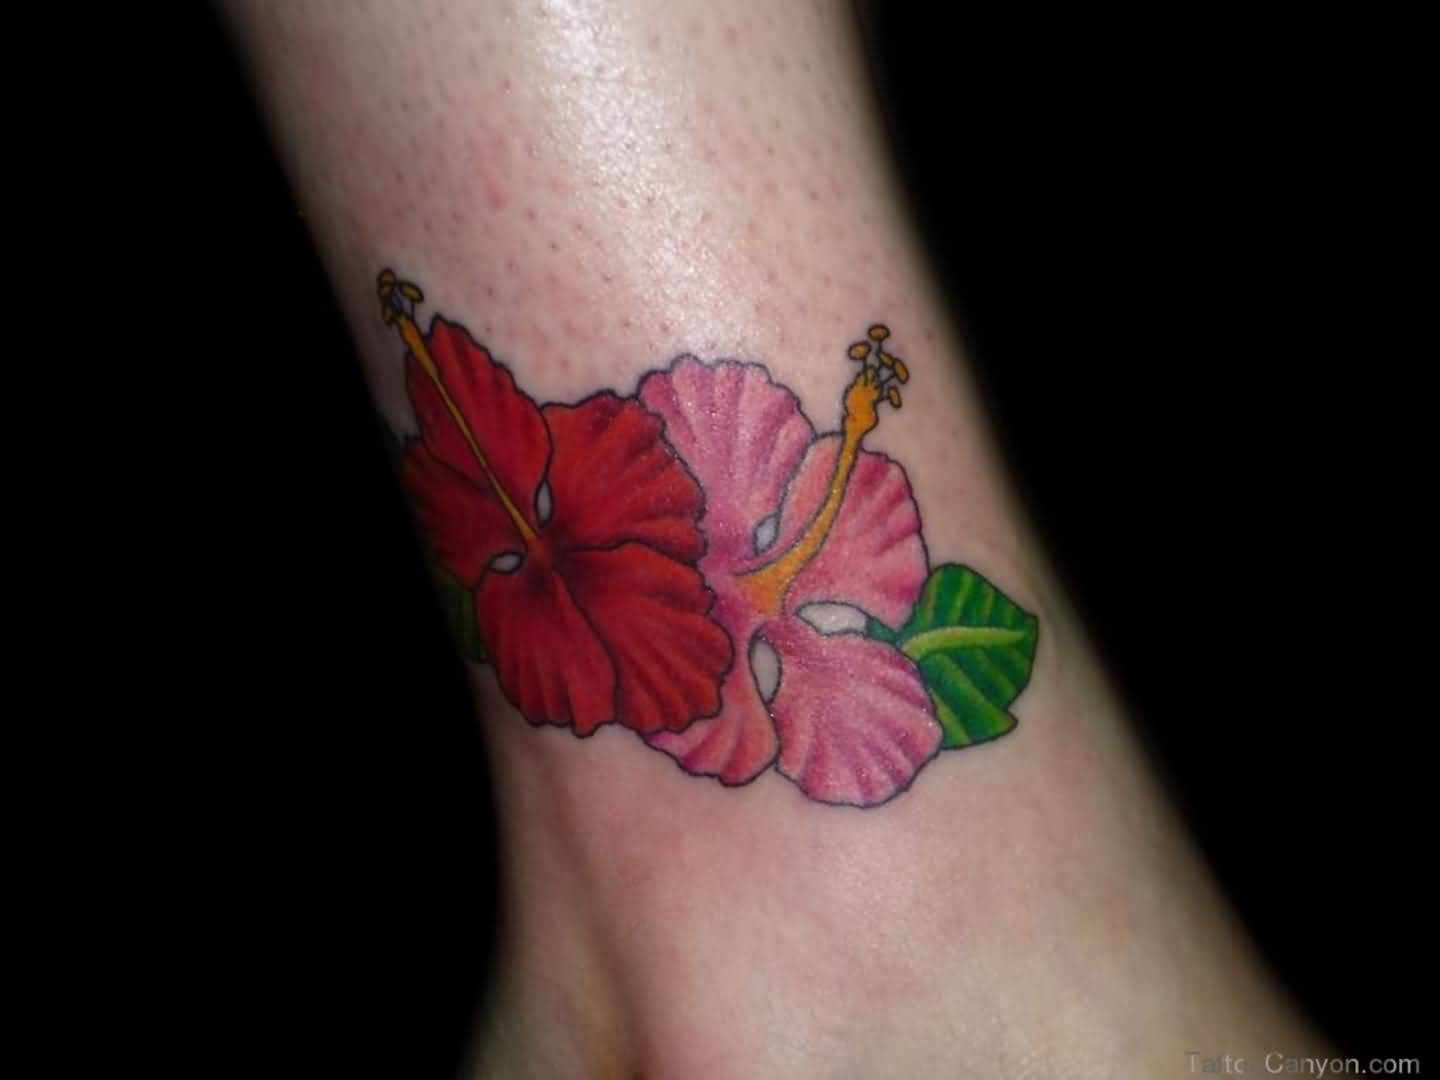 Lovely Simple Hibiscus Flower Tattoo Design Image Make On Ankle